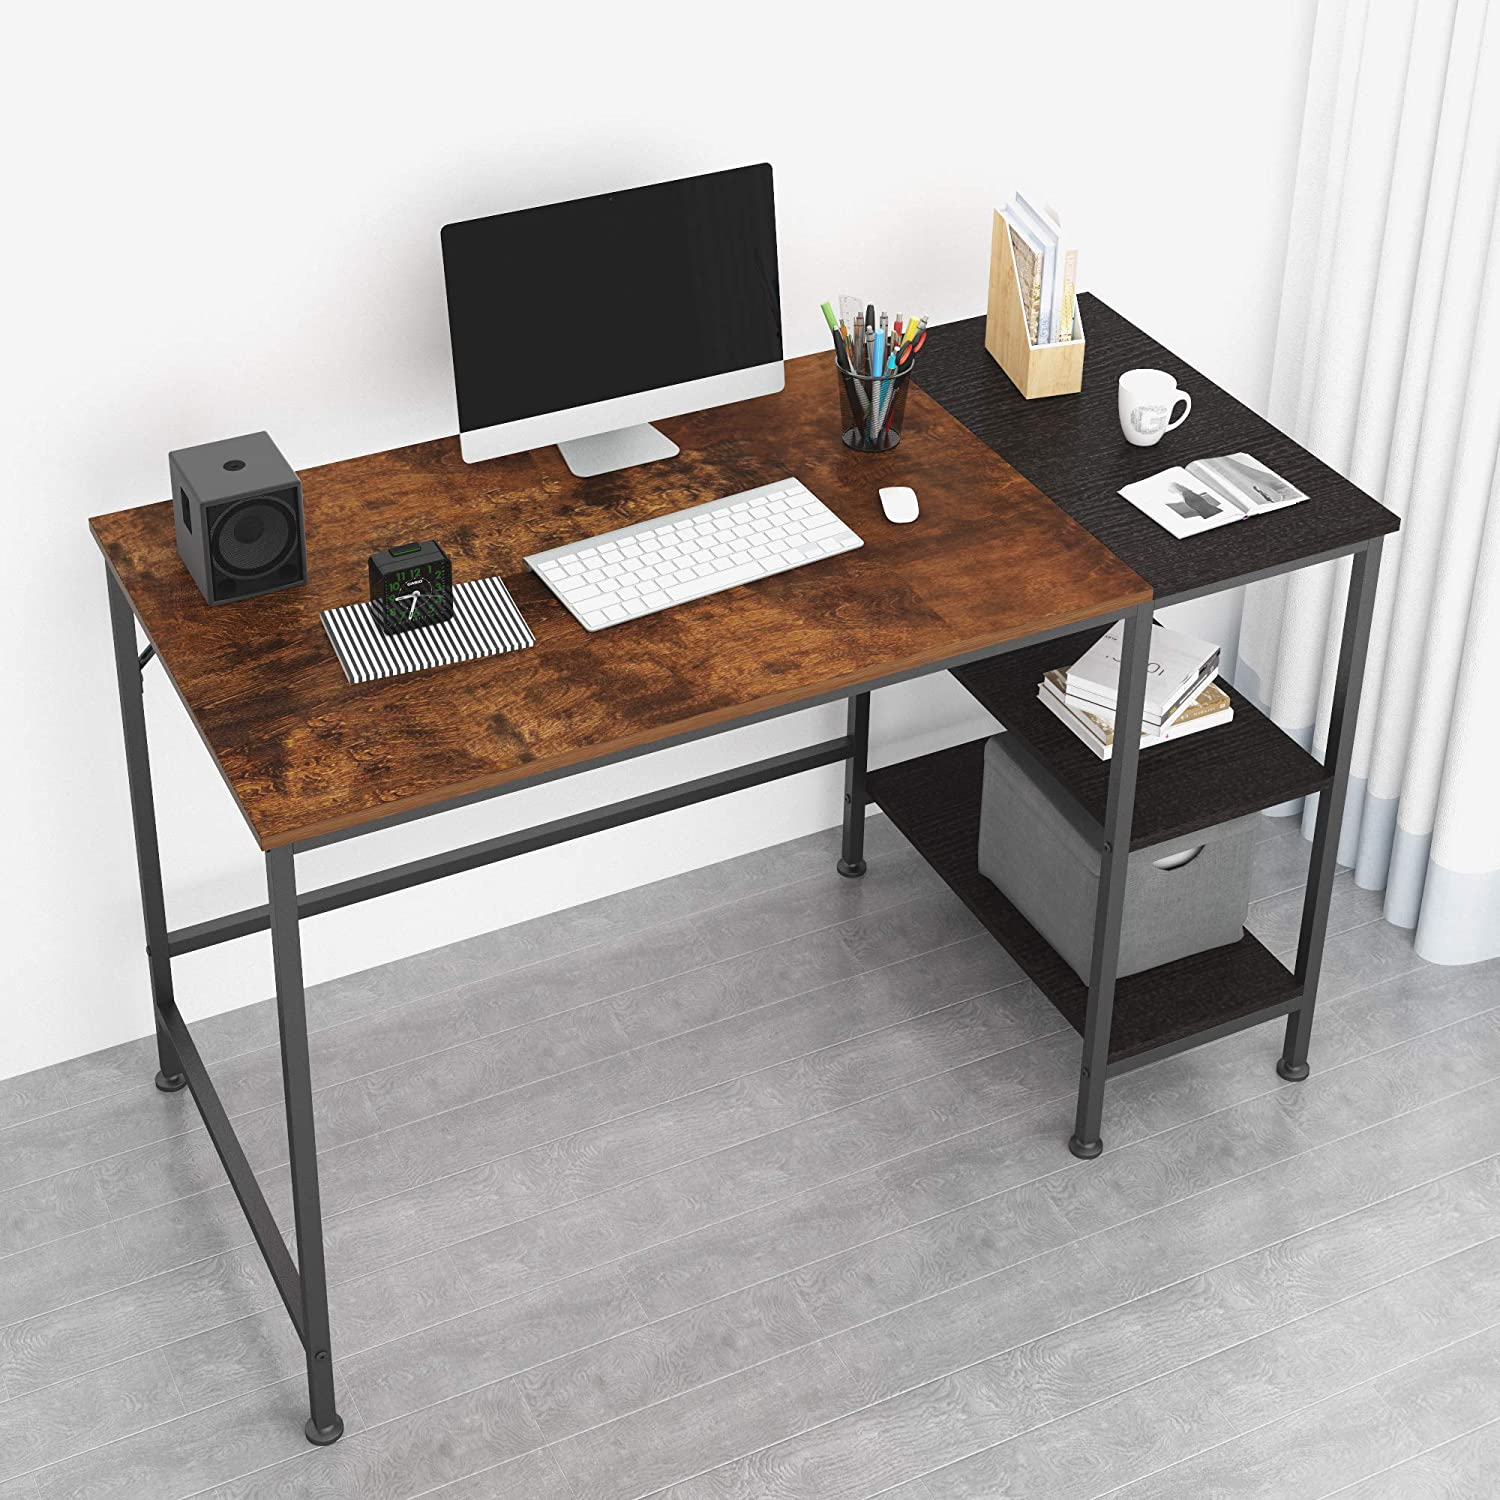 JOISCOPE Computer Desk with Shelves,Laptop Table with Wooden Drawer,47 inches(Vintage Oak Finish)